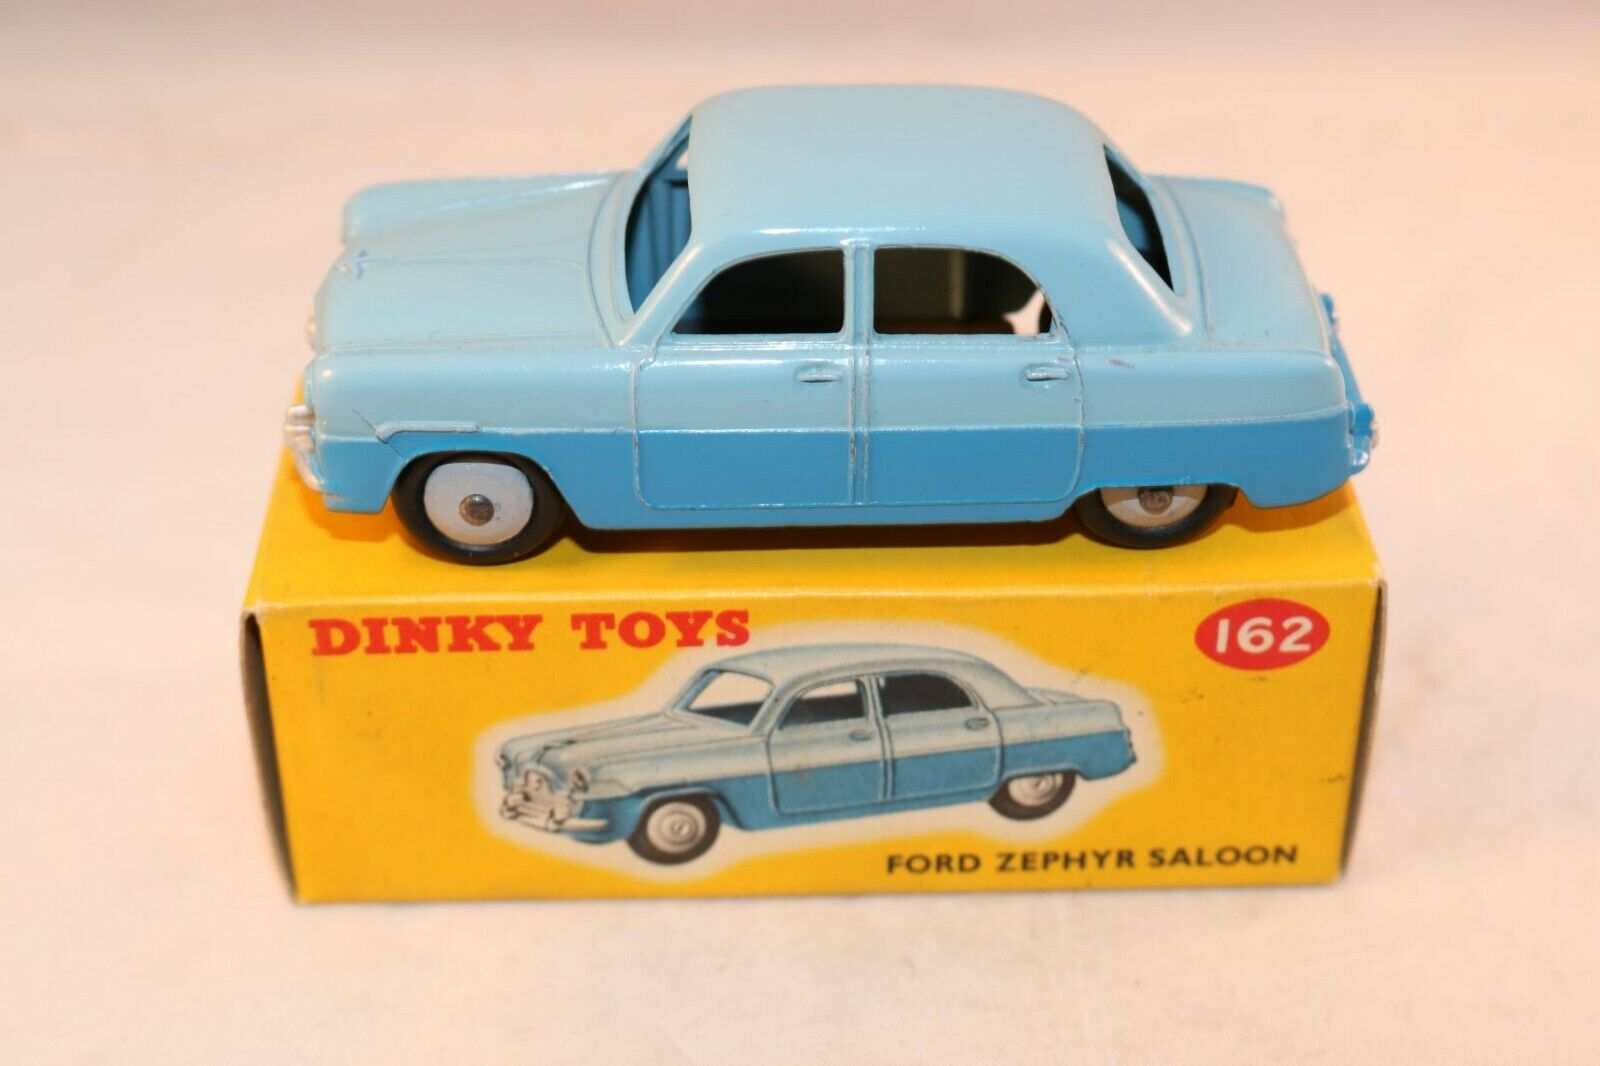 Dinky Toys 162 Ford Zephyr 2 tone blu in very very near mint condition